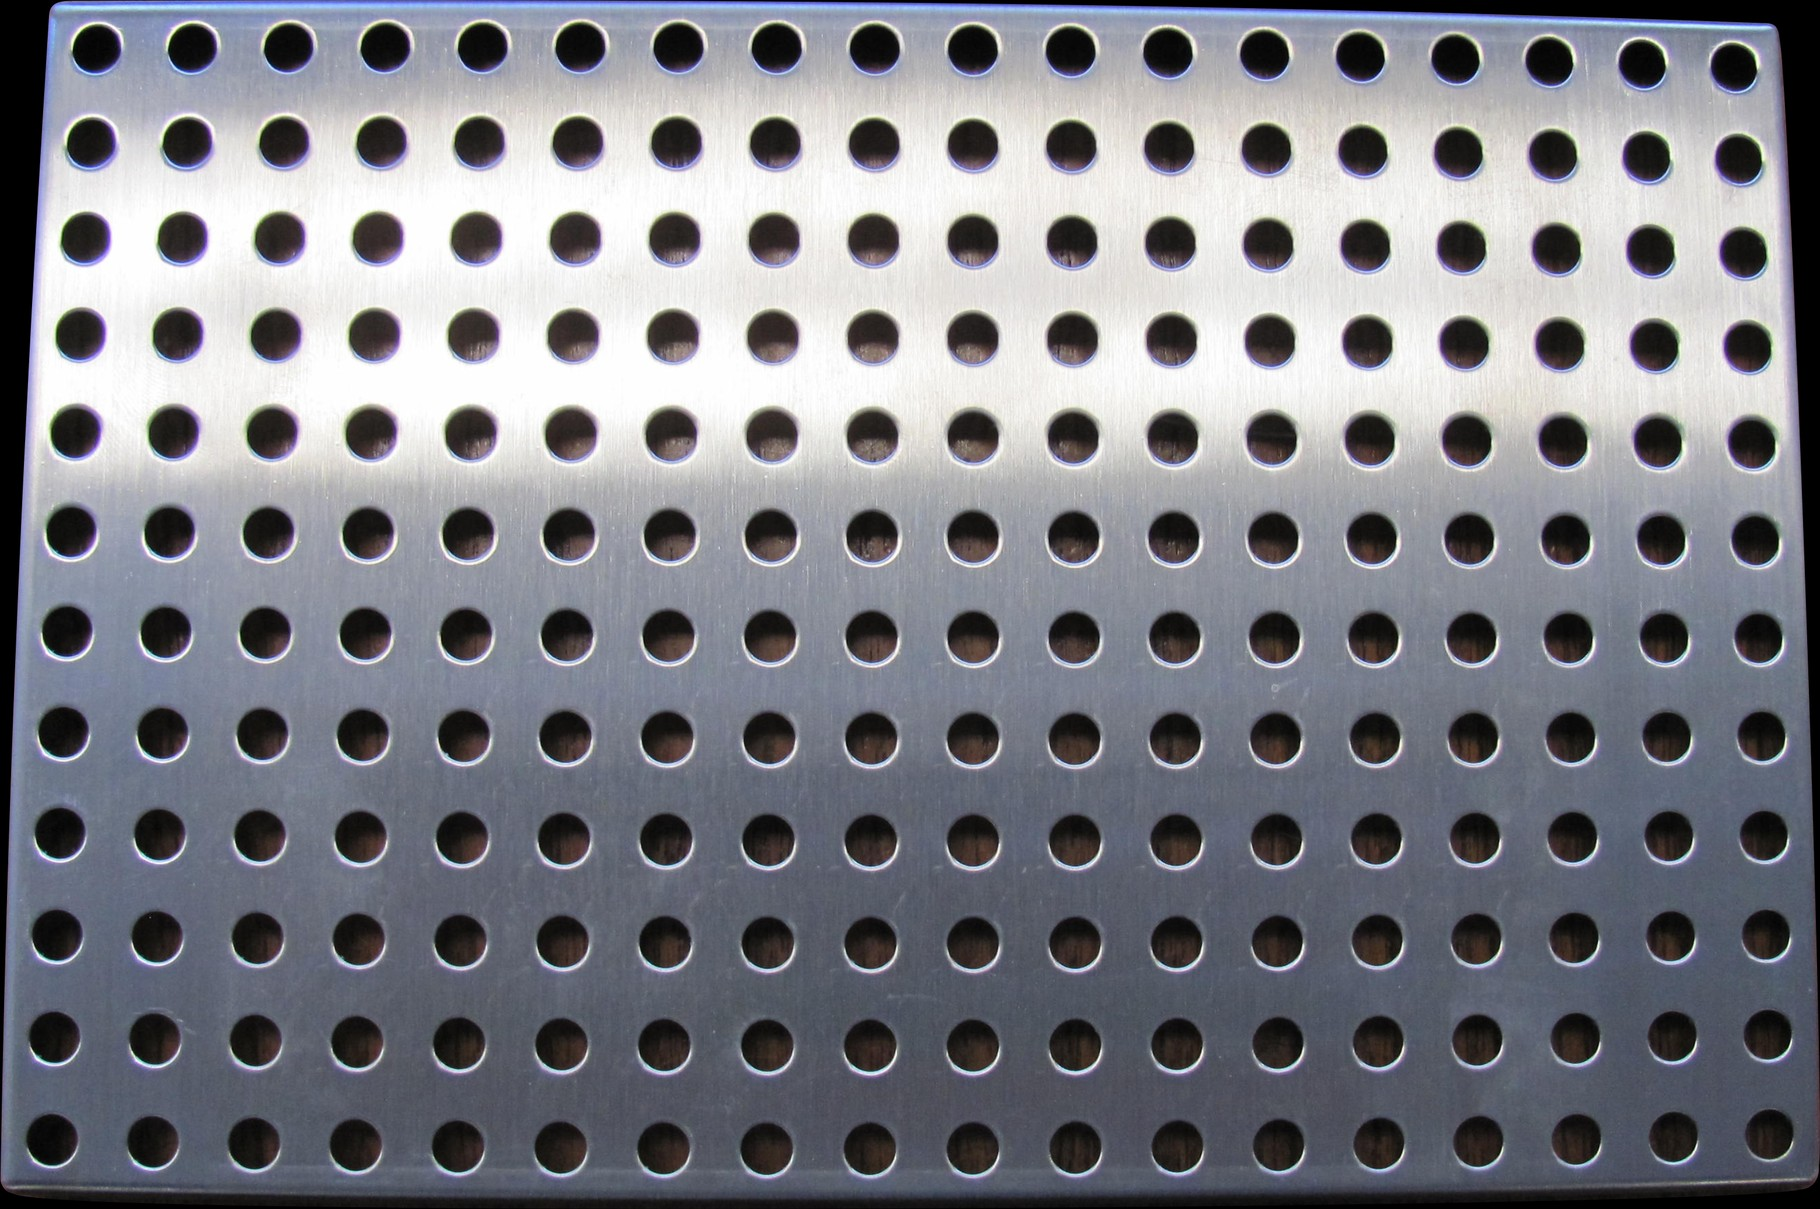 Stainless Steel Perforated Sign Blank